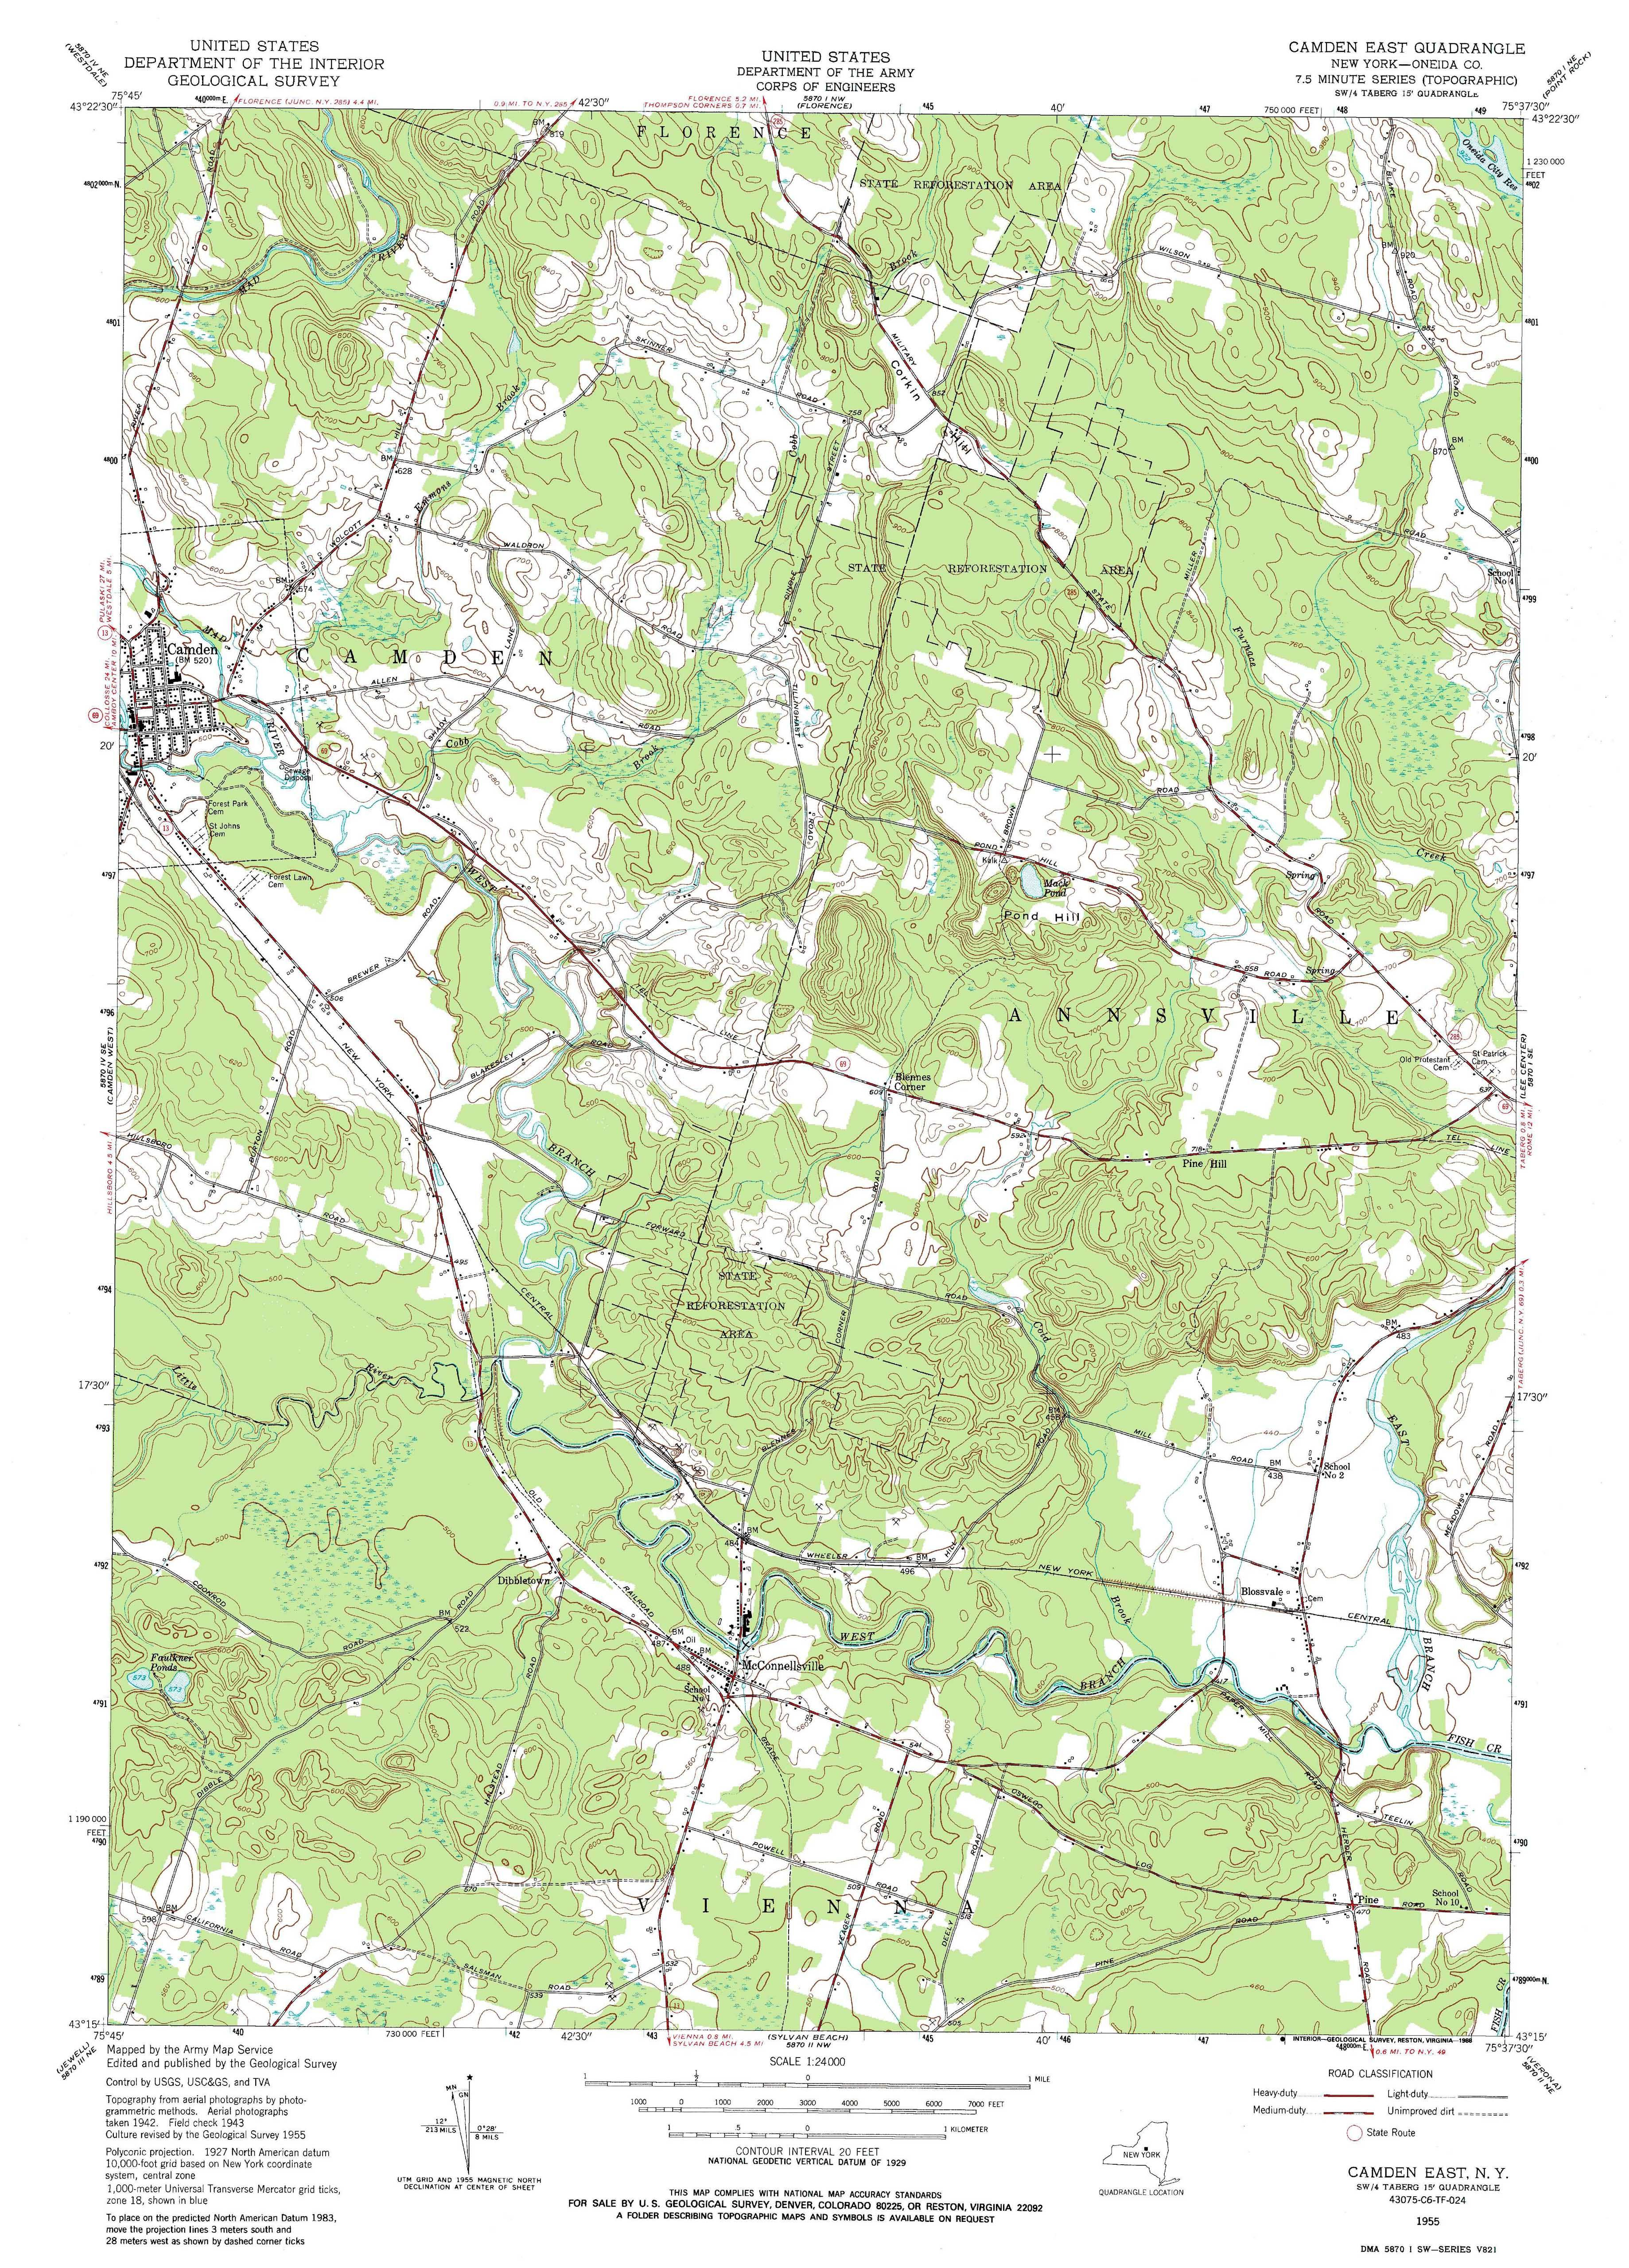 New York Topo Maps 75 minute Topographic Maps 124000 scale – Road Map Nyc